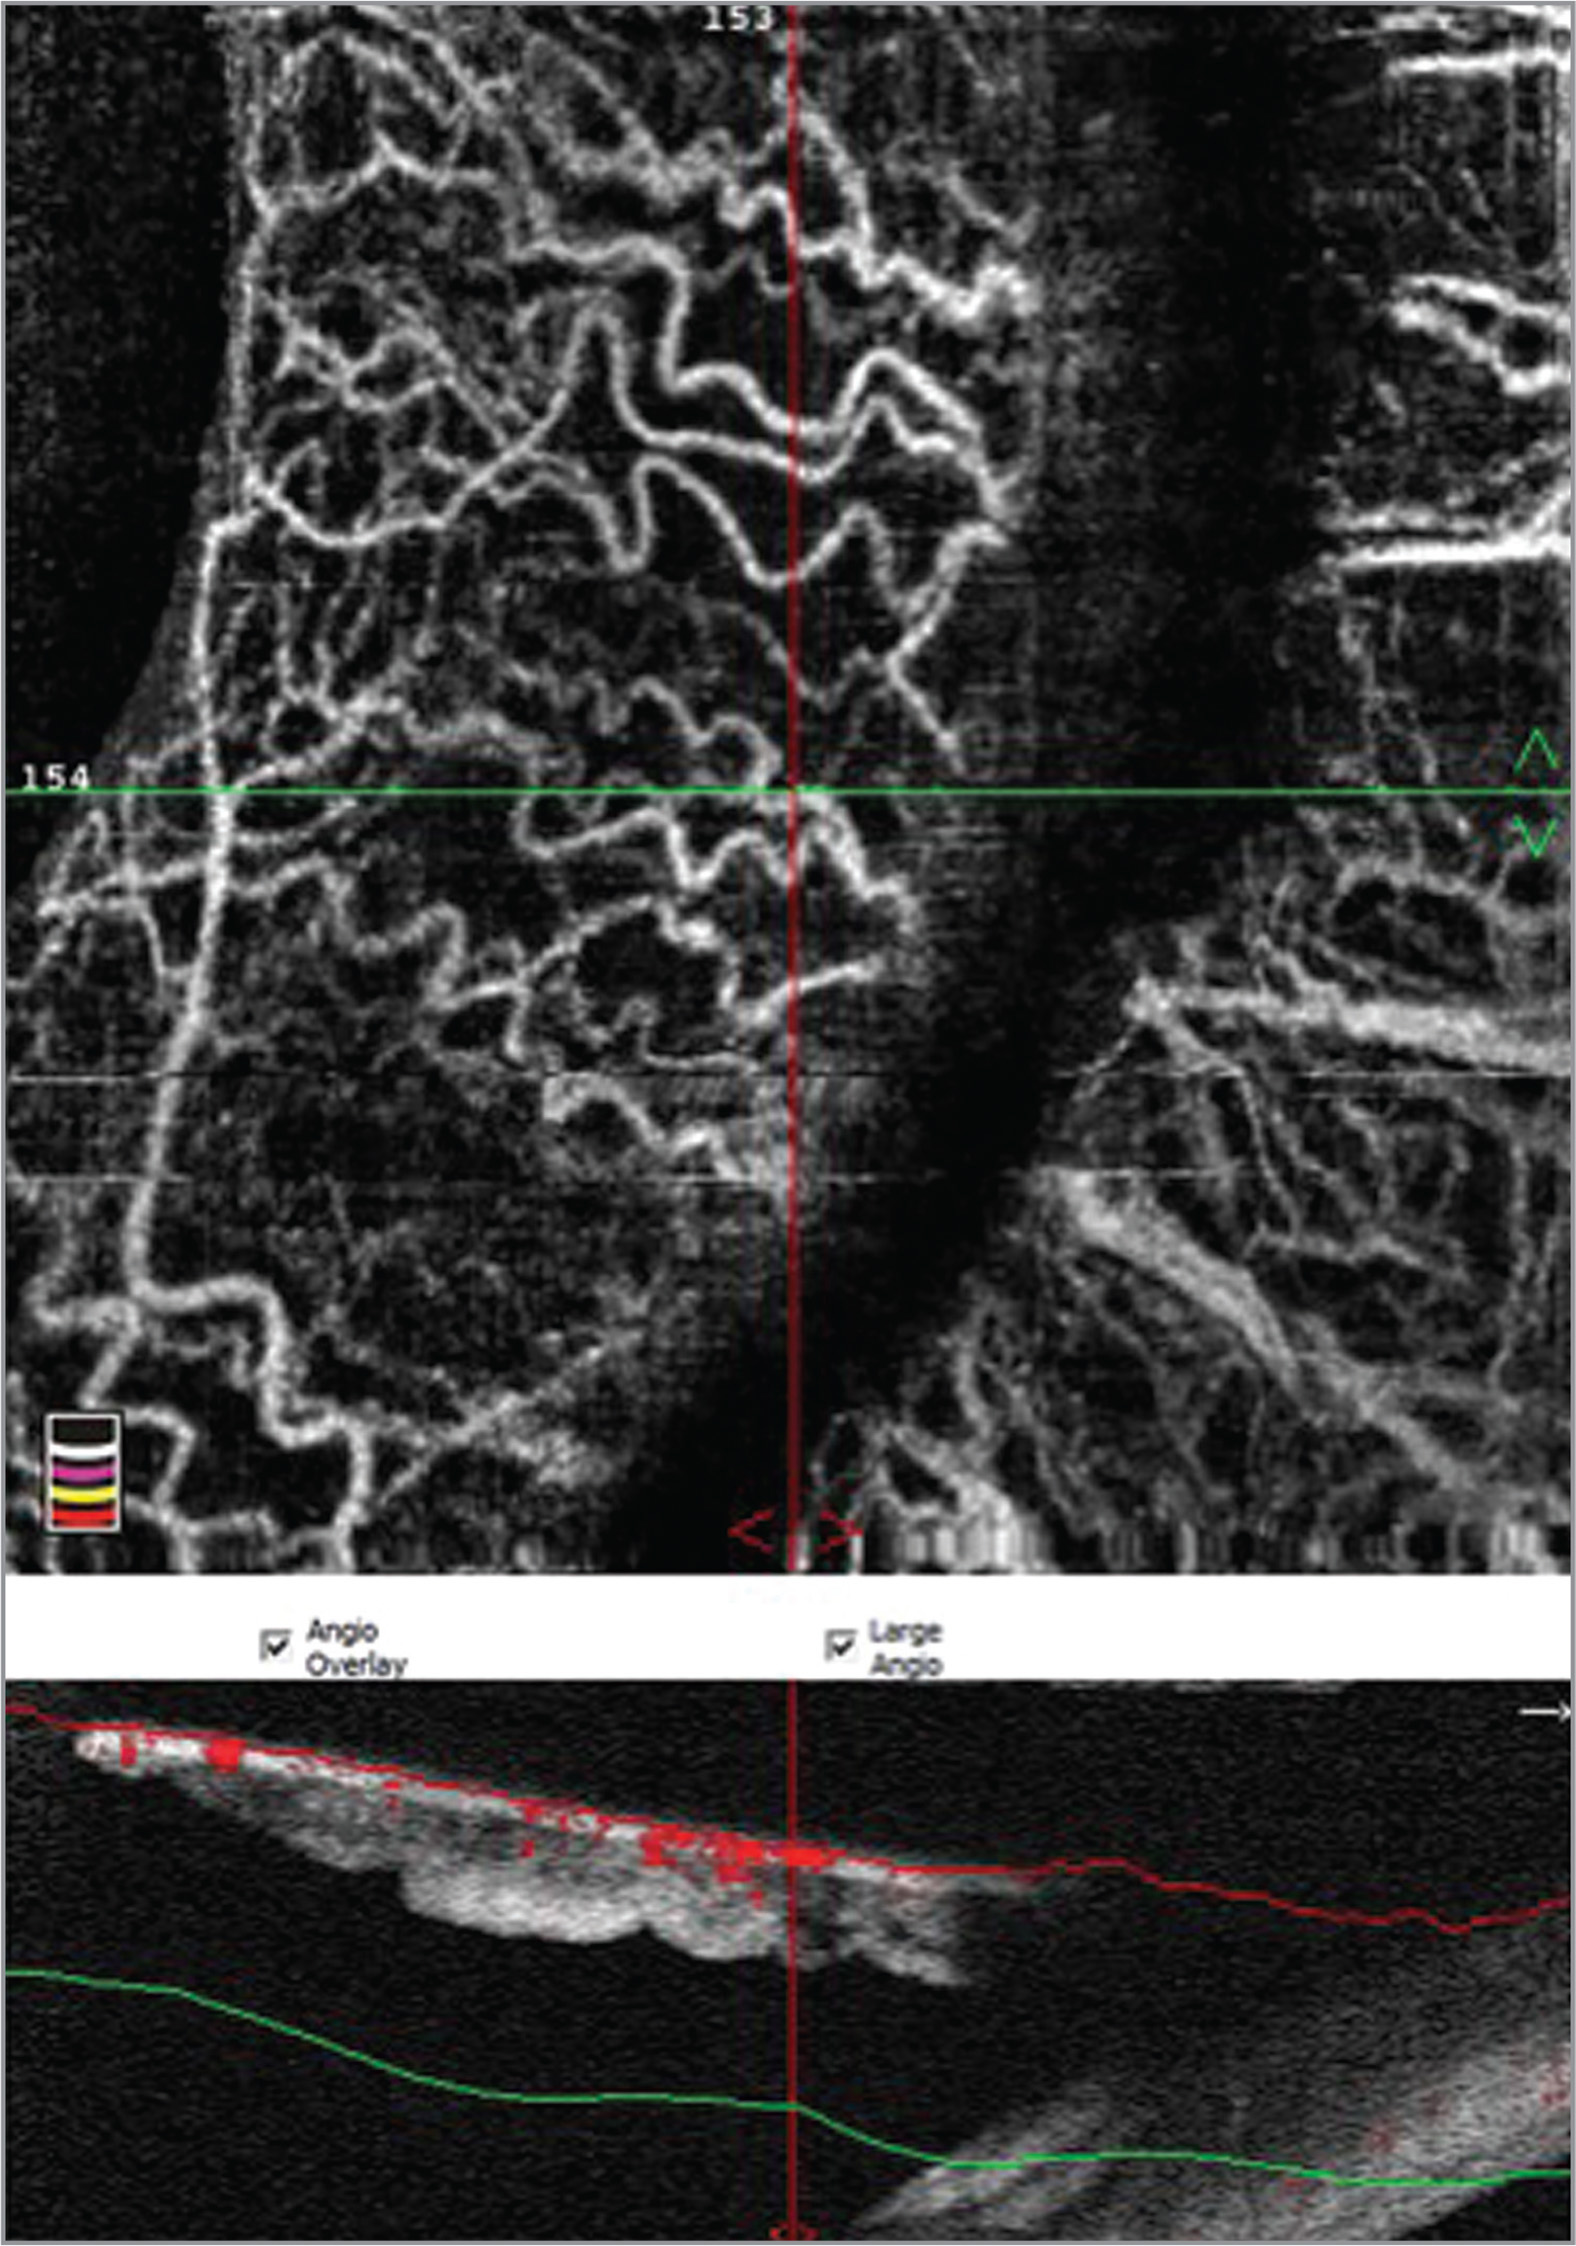 Figure shows 3 × 3 volume cubes optical coherence tomography angiography (OCTA) and OCT in normal iris: inferior temporal sector in left eye.